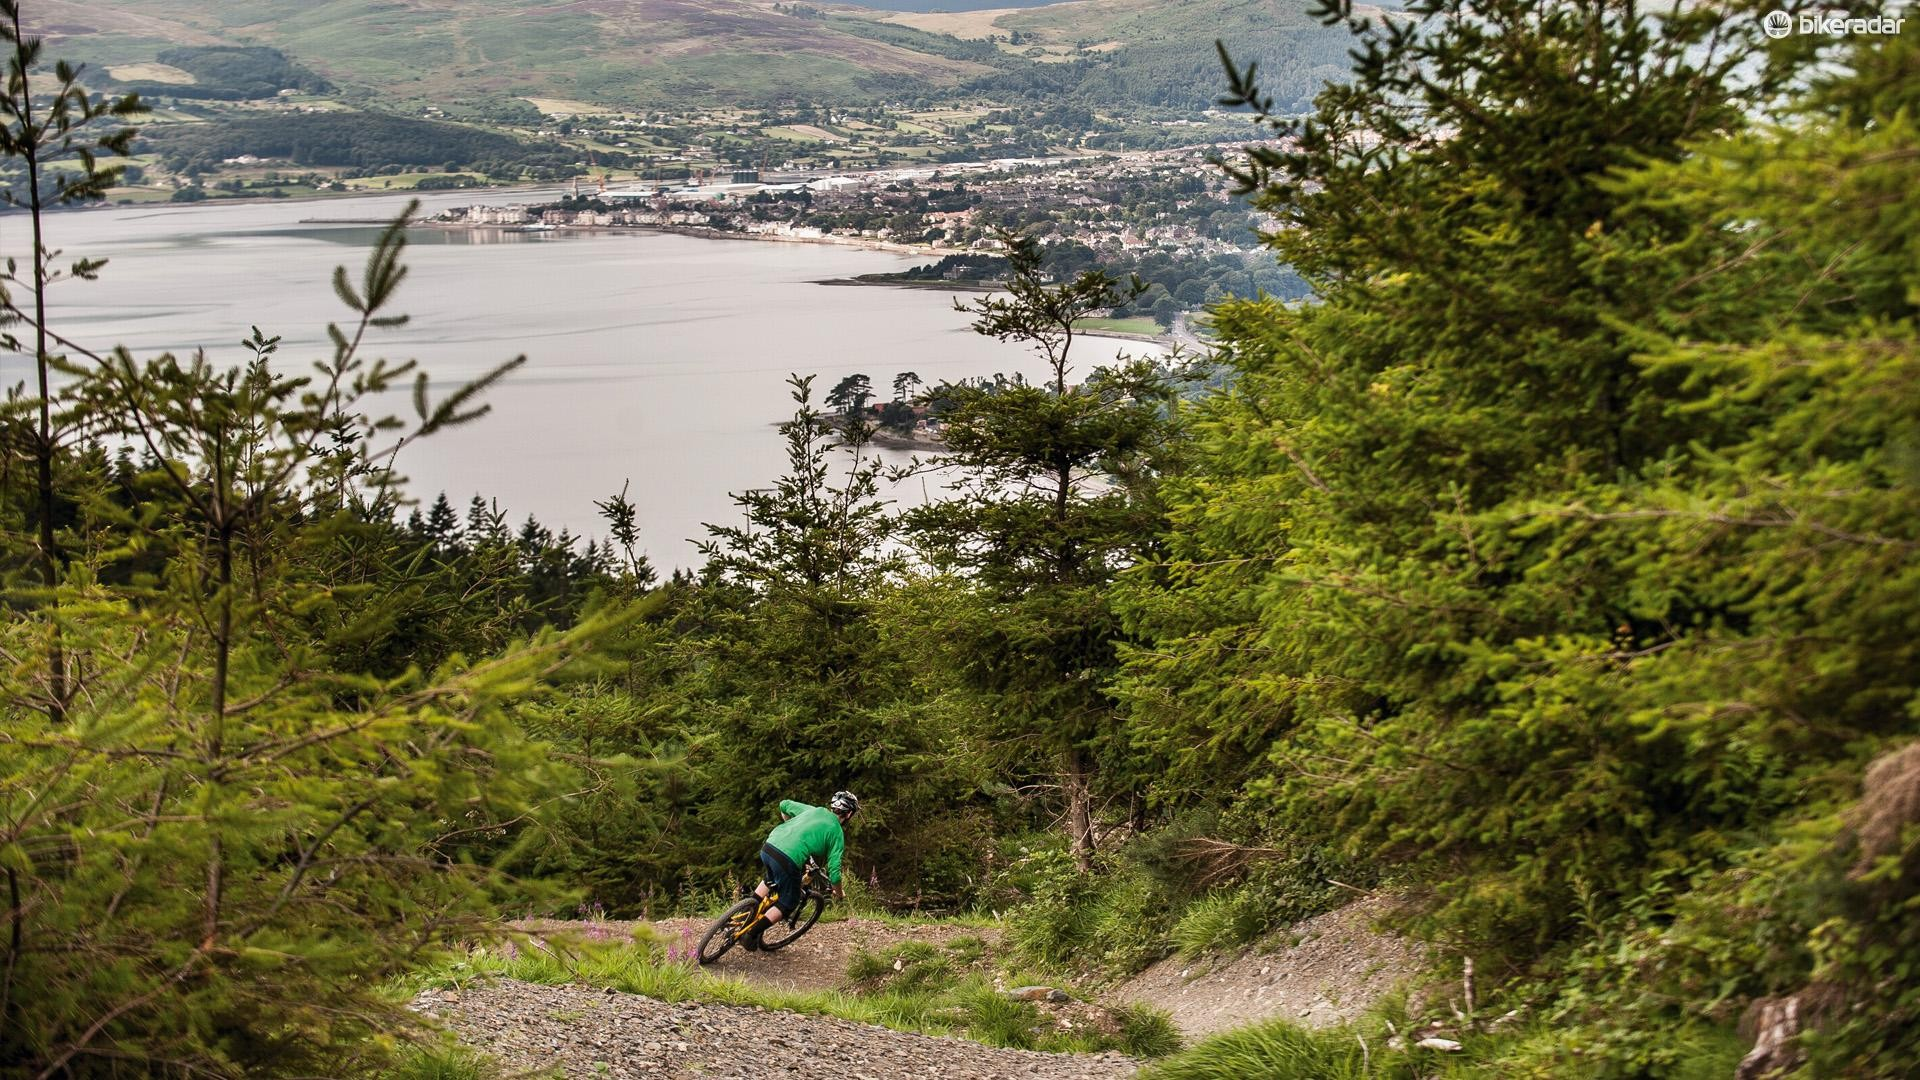 A long climb reveals some stunning views and exhilarating descents at Rostrevor